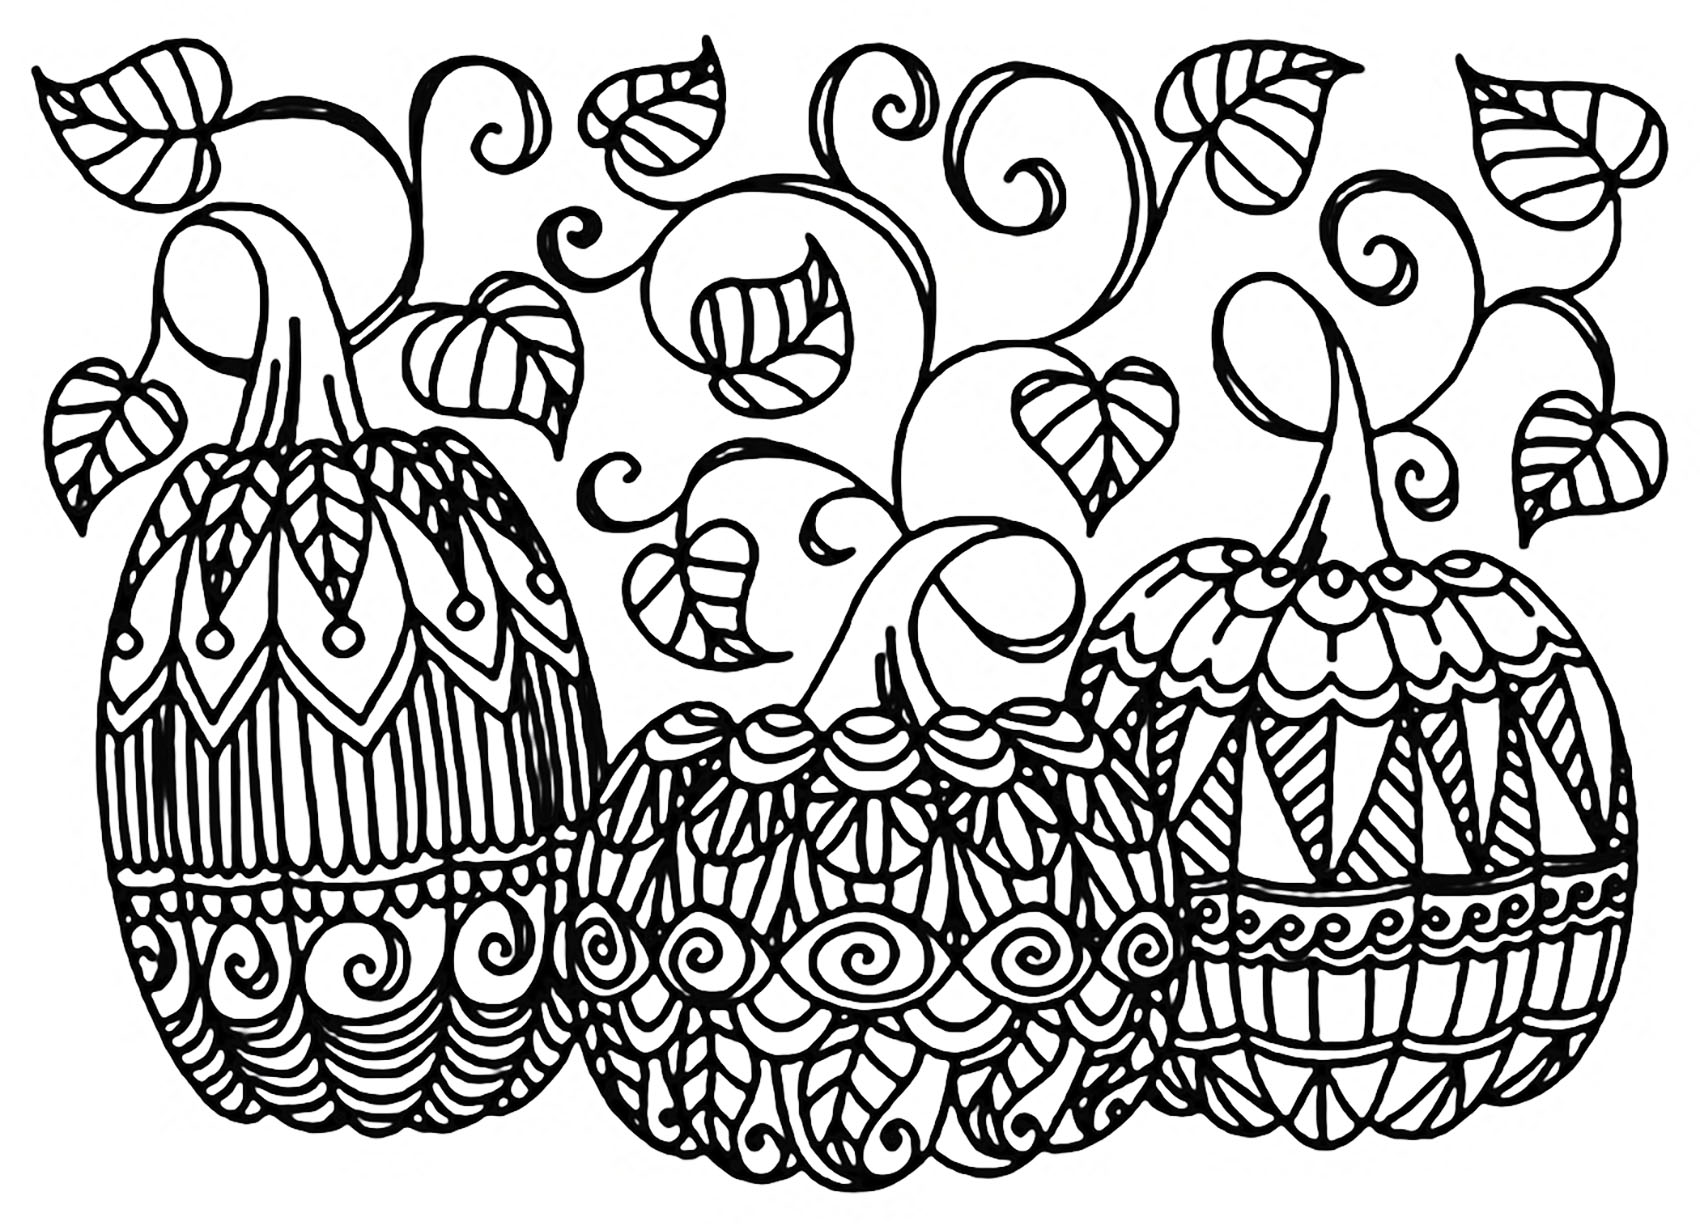 Halloween three pumpkins halloween adult coloring pages for Coloring pages for halloween free printable